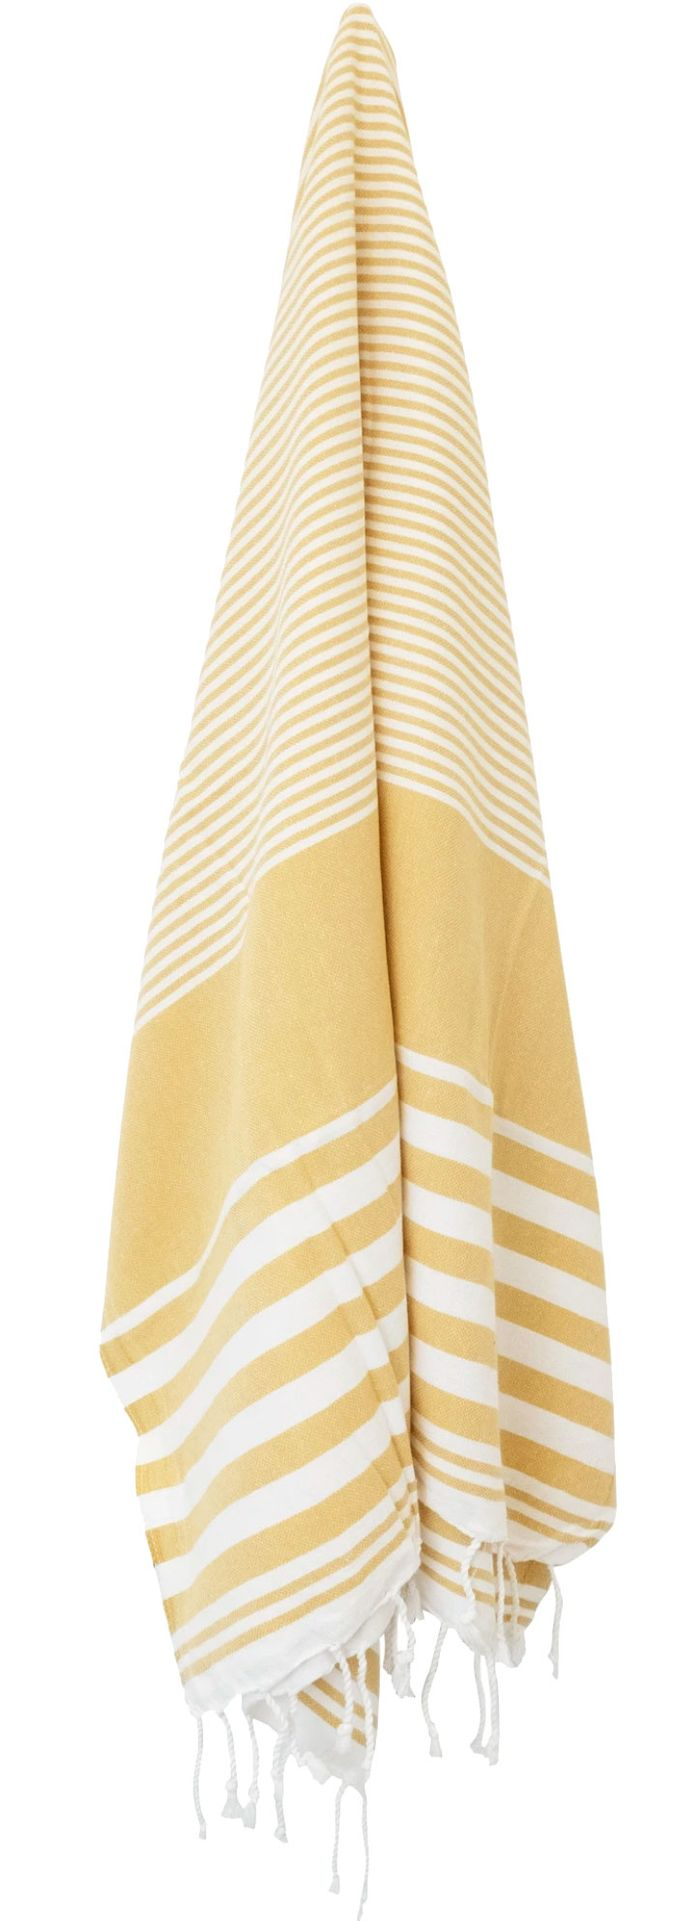 Yellow and white striped hanging Turkish towel